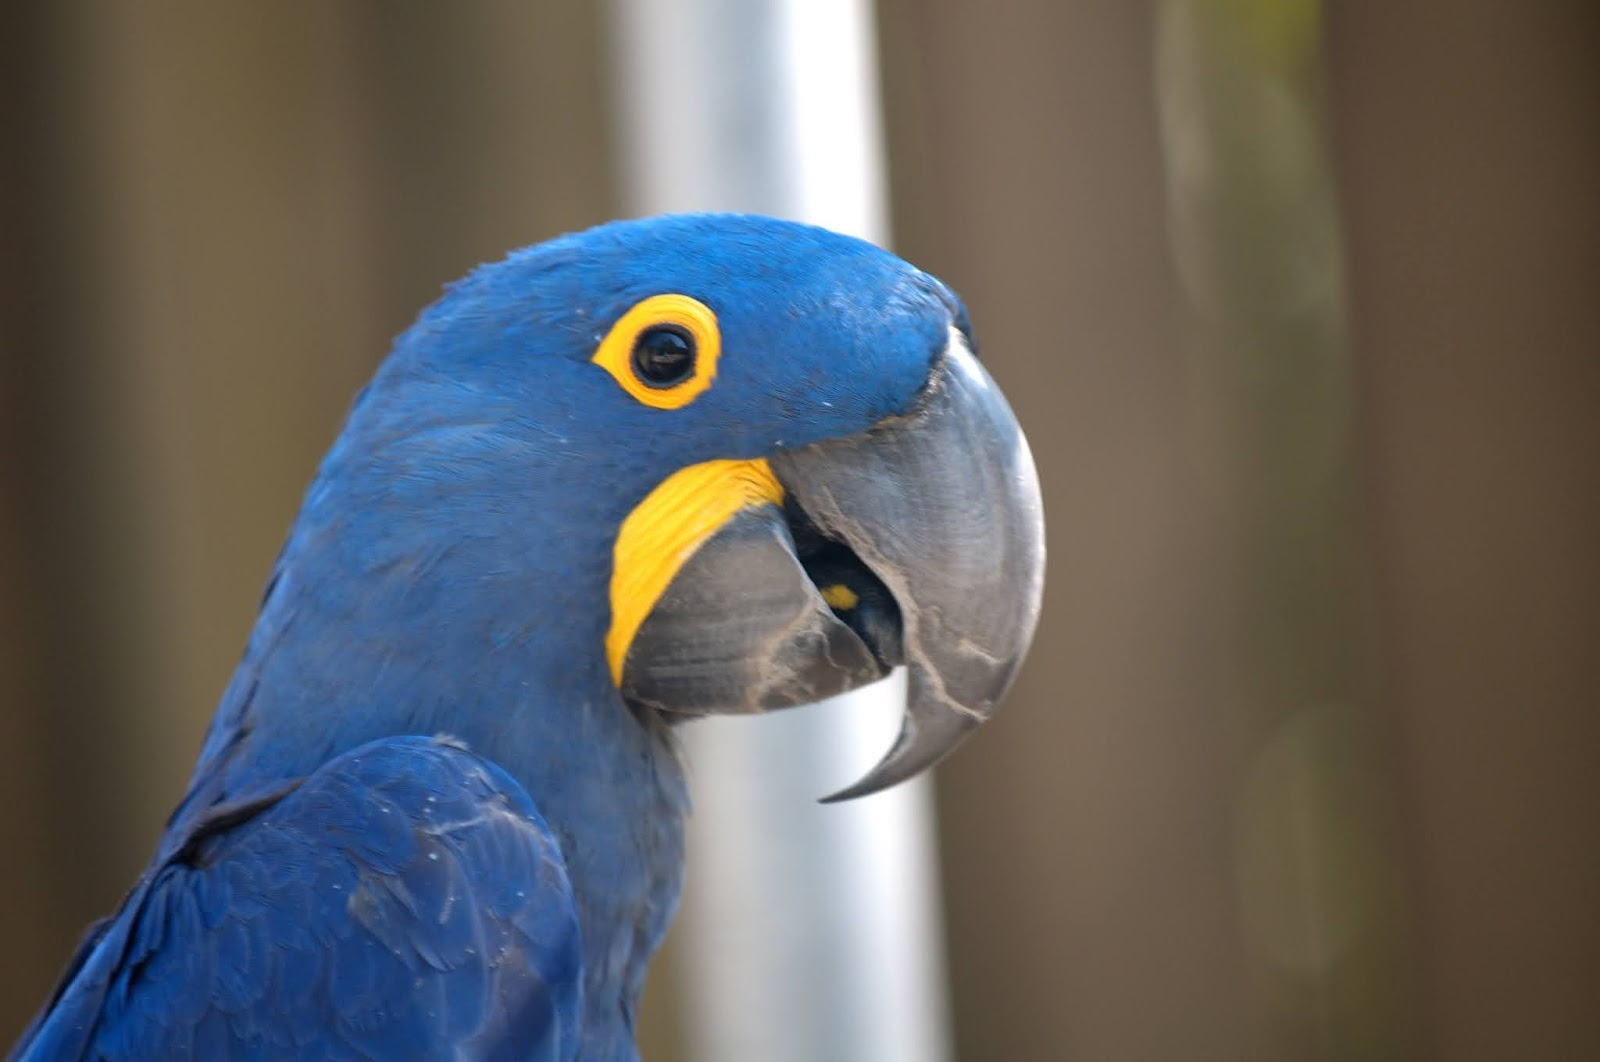 Hyacinth Macaw the largest of all the species parrots in the world